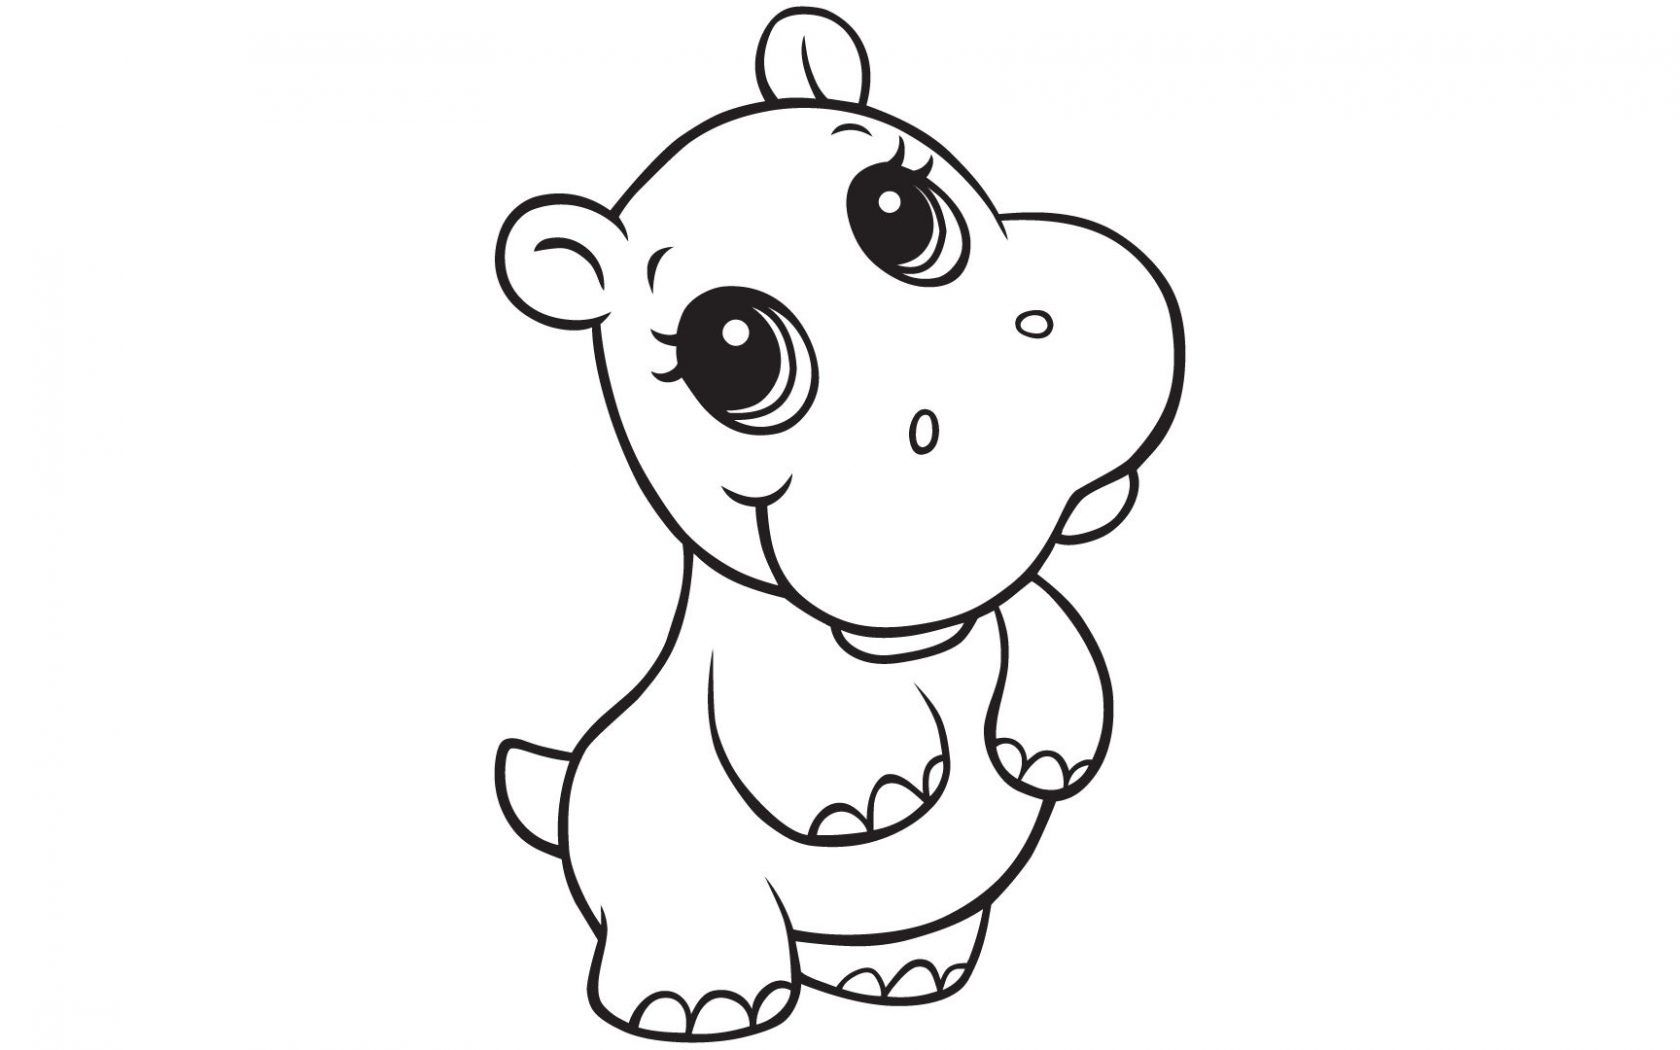 New Hippopotamus Page To Color Gallery Baby Hippo With Mother Coloring Page Free Printable Pages For K Safari Baby Animals Cute Baby Cow Cute Animal Drawings